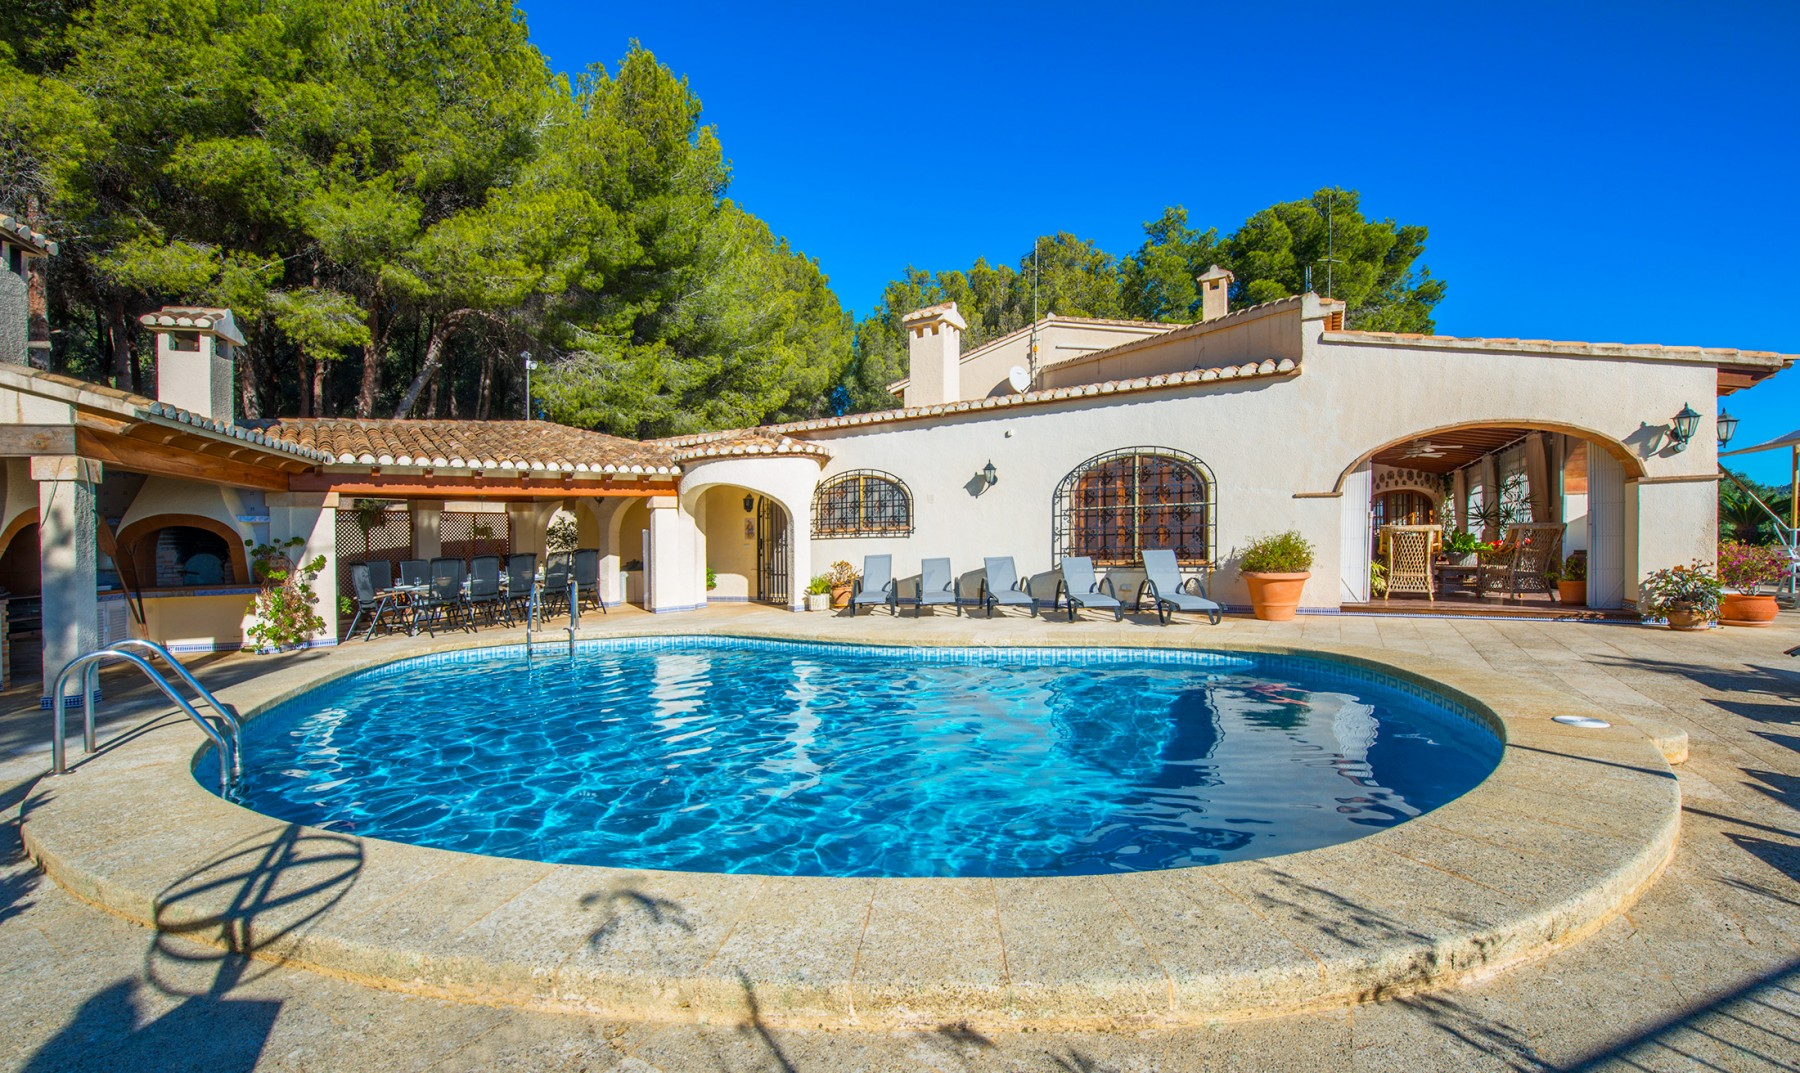 Costa blanca location villa calpe piscine priv e for Villa piscine privee